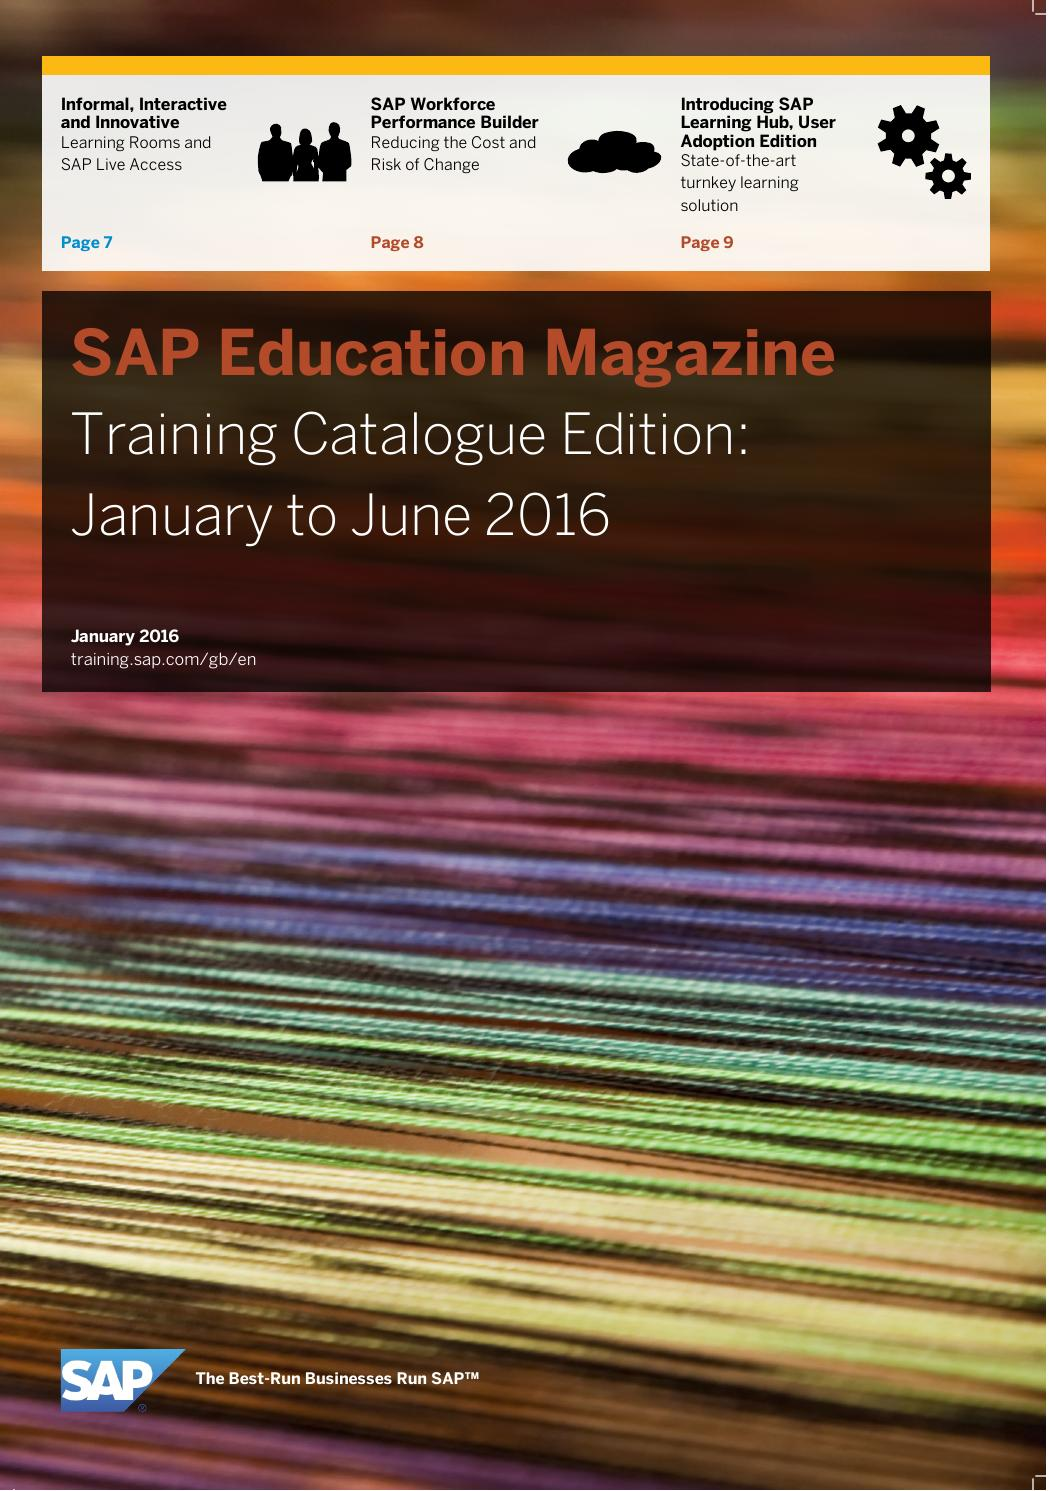 Sap education magazine training catalogue edition january to june 2016 by  Saad Khatib - issuu